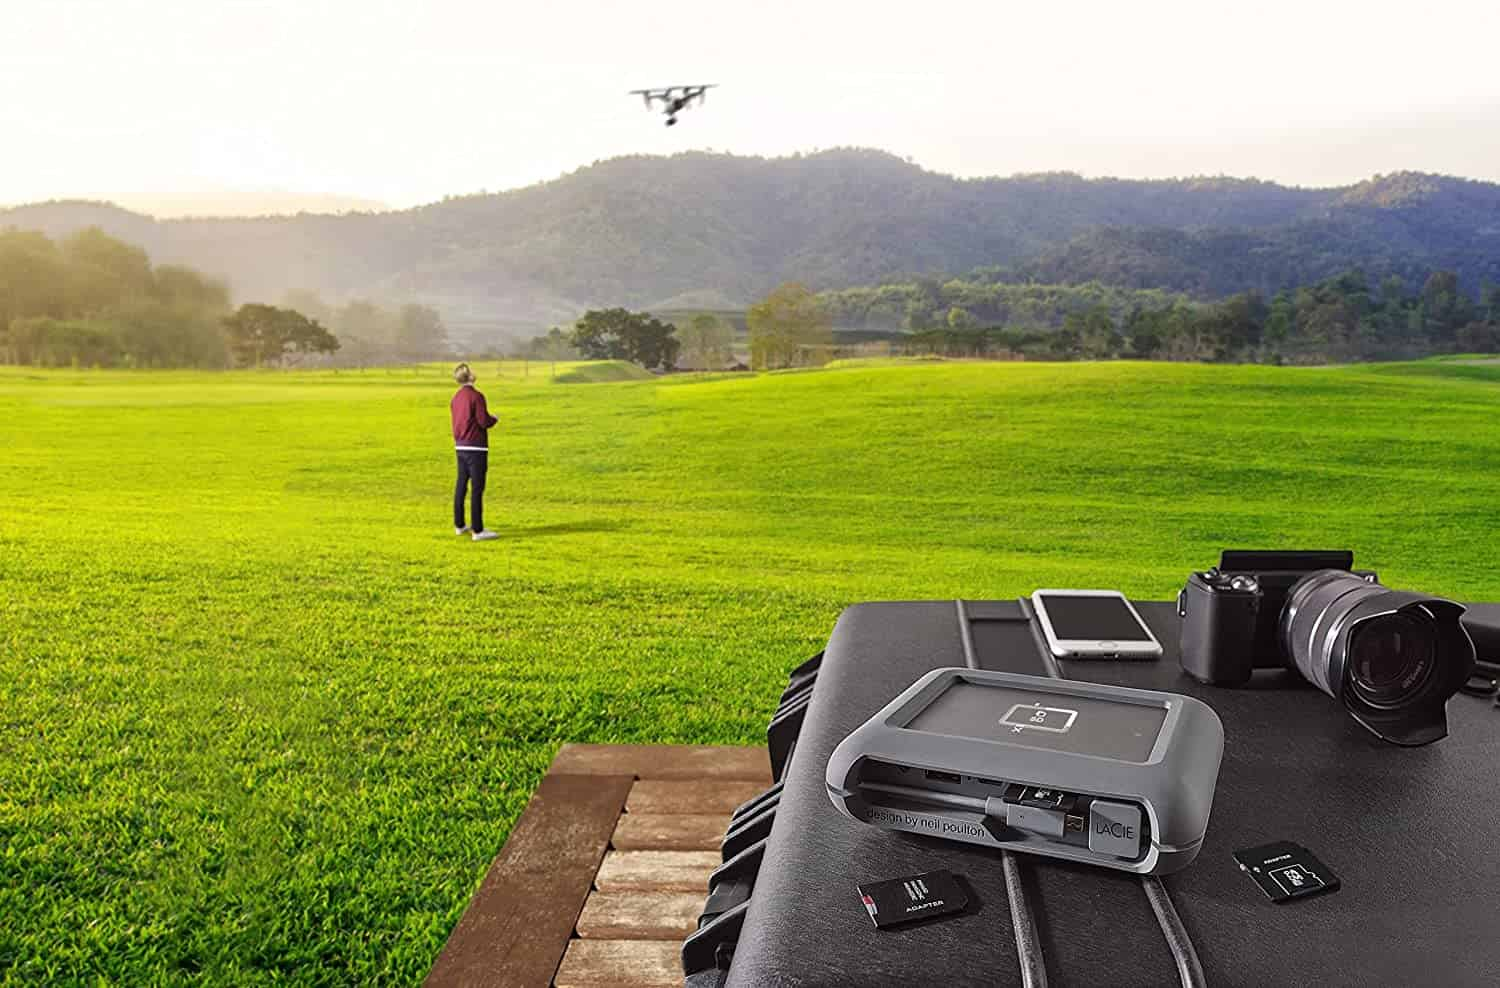 LaCie DJI Copilot BOSS Computer-free In-field Direct Backup and Power Bank -min